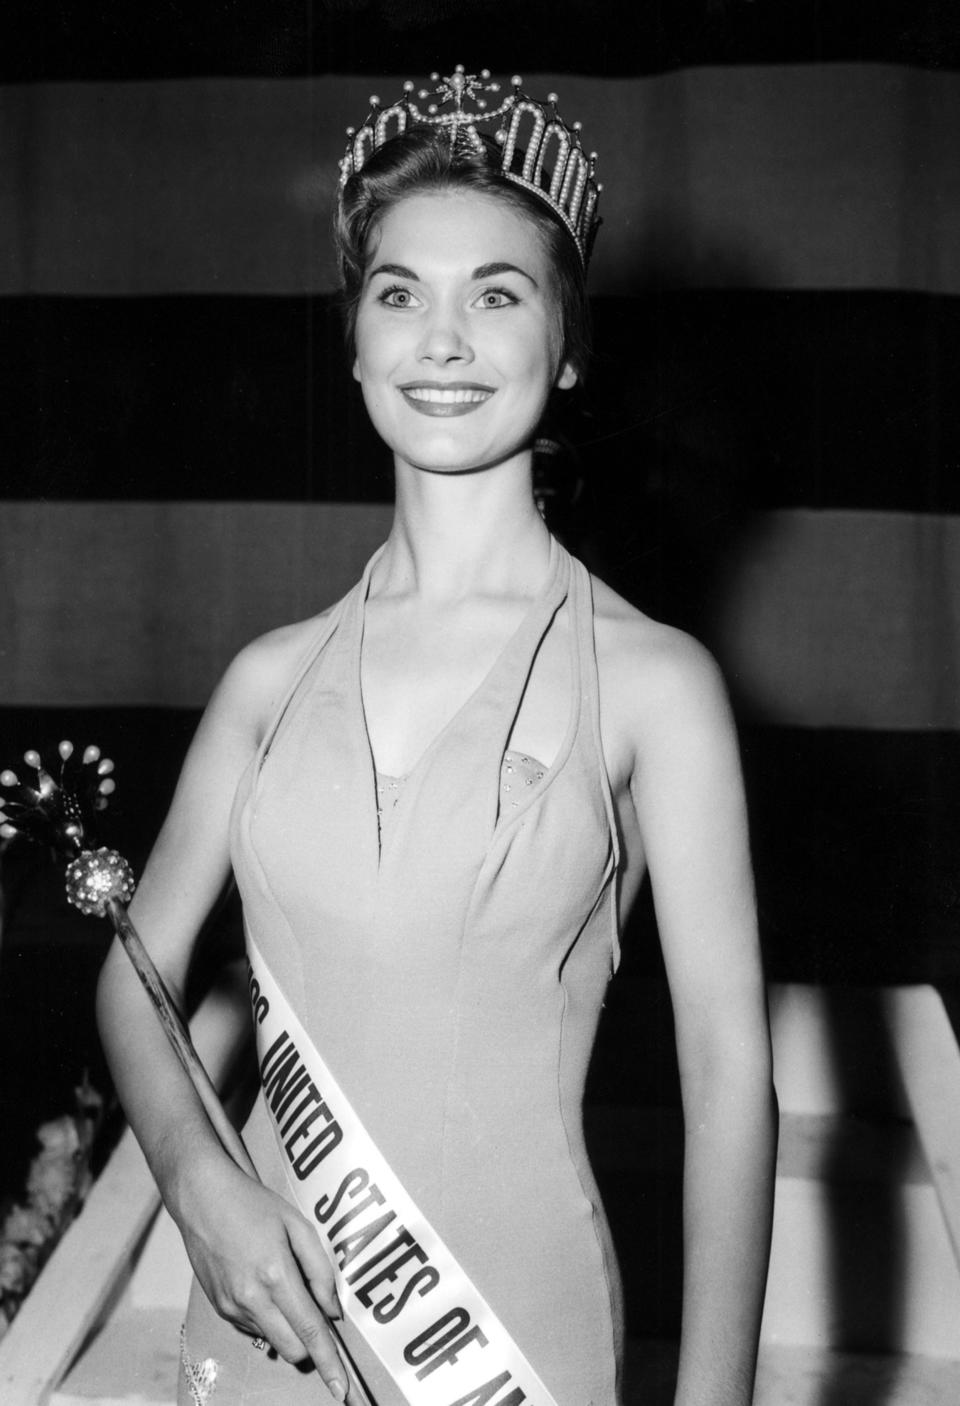 "Eurlyne Howell, Miss USA 1958, is captured for posterity in this picture from July 23, 1958, the night she became Miss USA.  Part of the original caption on this photo by the Associated Press read, ""She is 18 and a sophomore at Centenary College in Louisiana.  The new American bearuty will face 34 foreign entrants in the Miss Universe judging beginning the following night."".The original caption on this photo of Eurlyene Howell, Miss USA 1958, read, ""Slender Eurlyne Howell, a Louisiana honey blonde who discribes herself as a Southern Lady, wears her royal crown after being named the new Miss United States of America in the annual contest at Long Beach, CA July 23."""